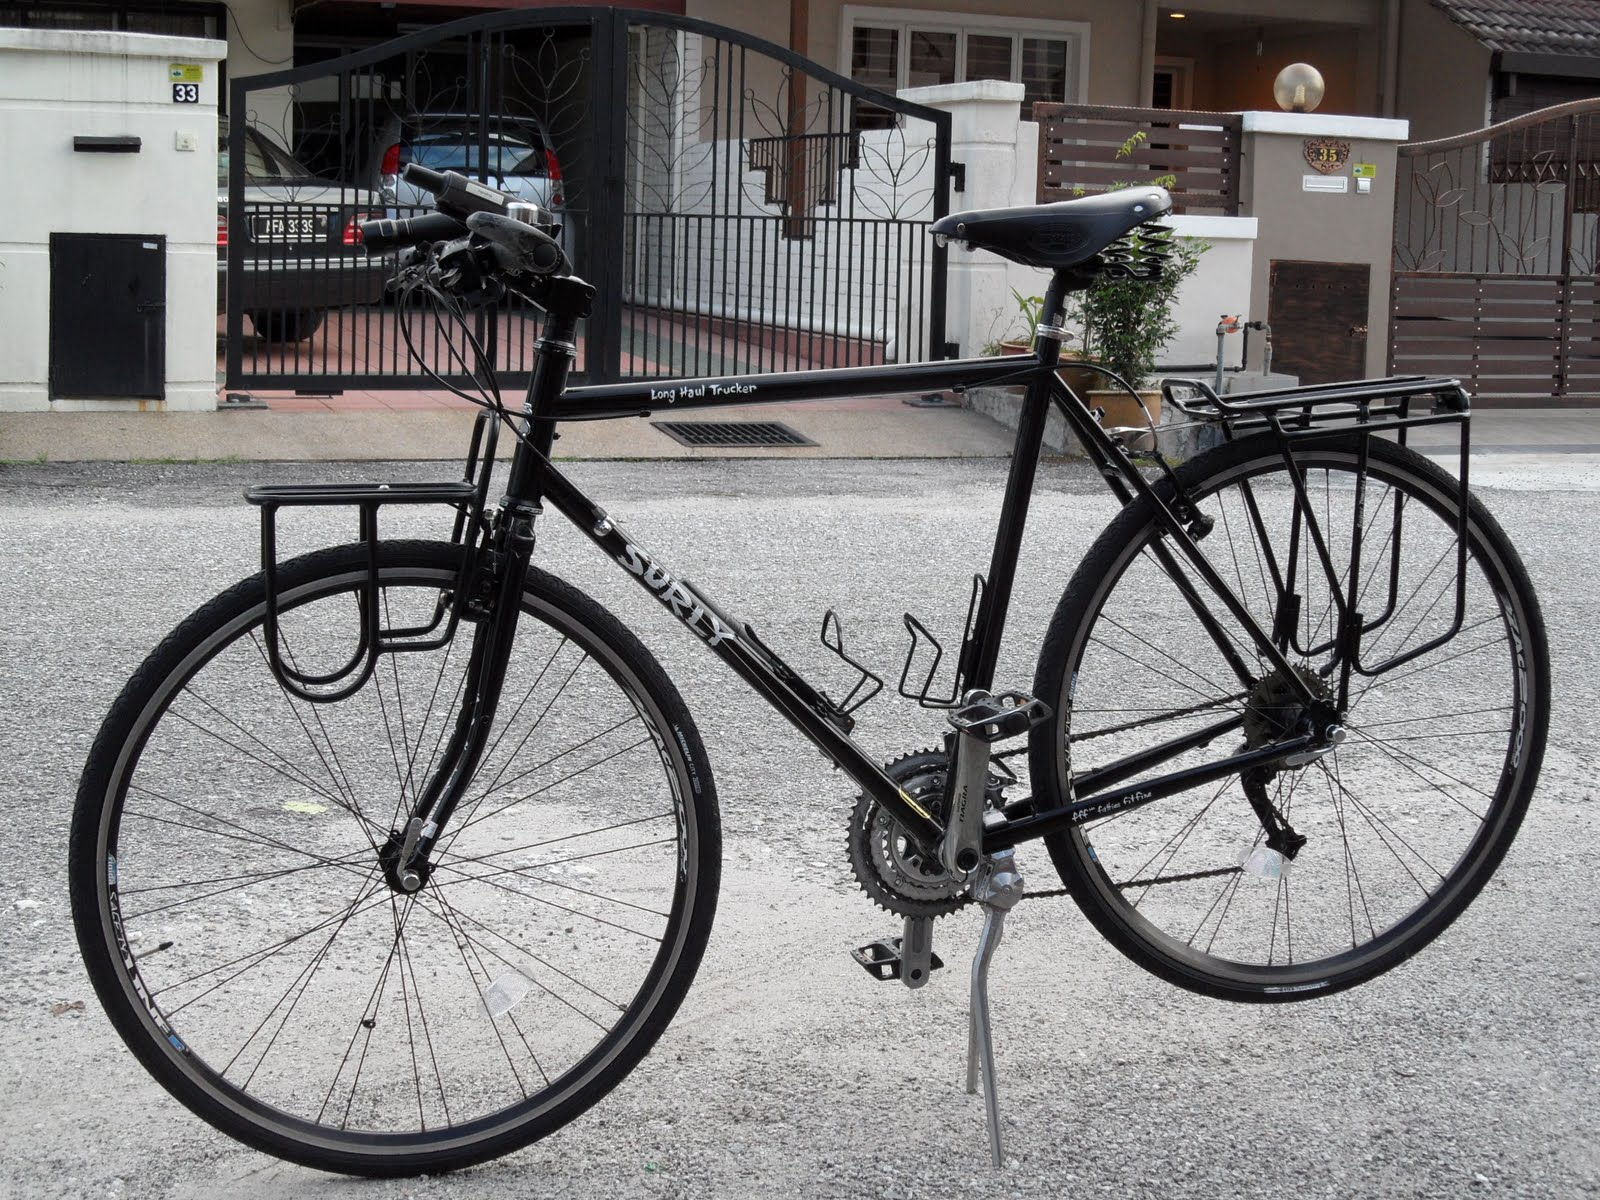 The Surly Long Haul Trucker is by far amongst the most reputable tour  bicycles which season cycle tourist swears by around the globe. 21b156f9e